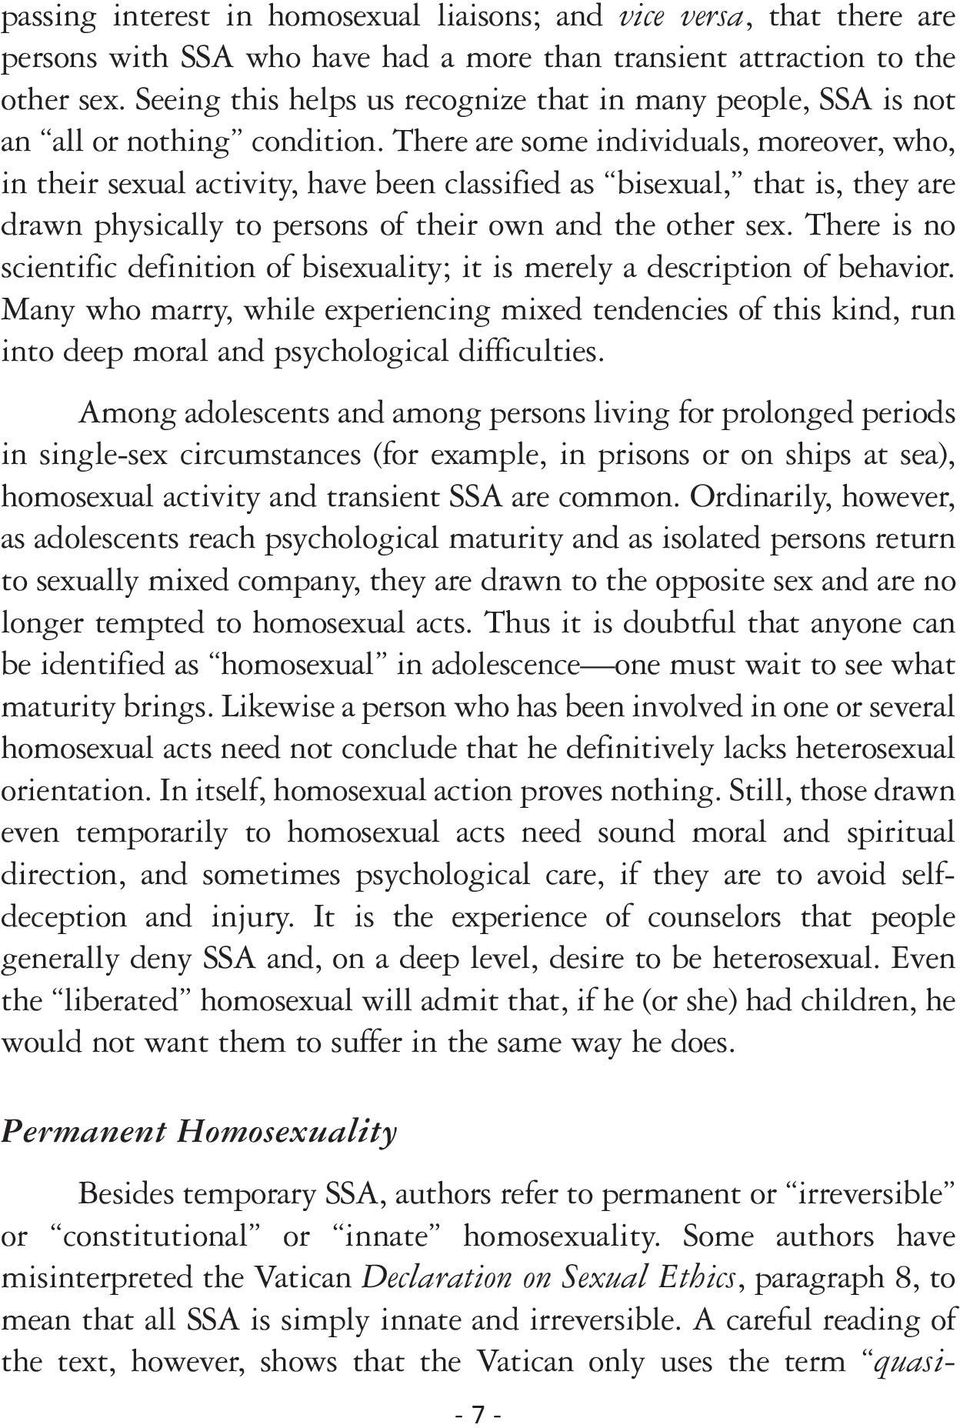 There are some individuals, moreover, who, in their sexual activity, have been classified as bisexual, that is, they are drawn physically to persons of their own and the other sex.